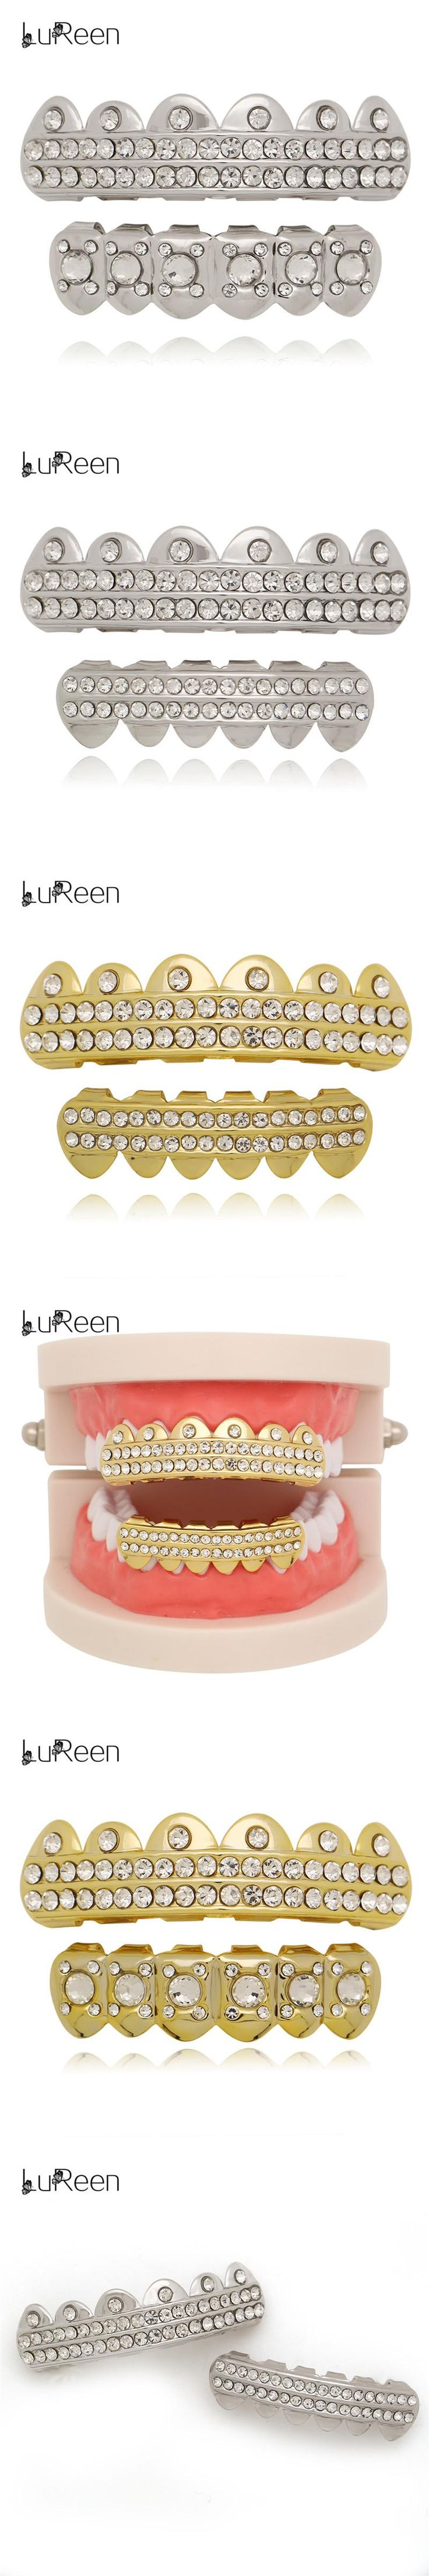 LuReen New Rhinestone Gold Teeth Grills Top&Bottom Hiphop Grills Dental Caps Mouth Halloween Tooth Grills Party Jewelry LD0062